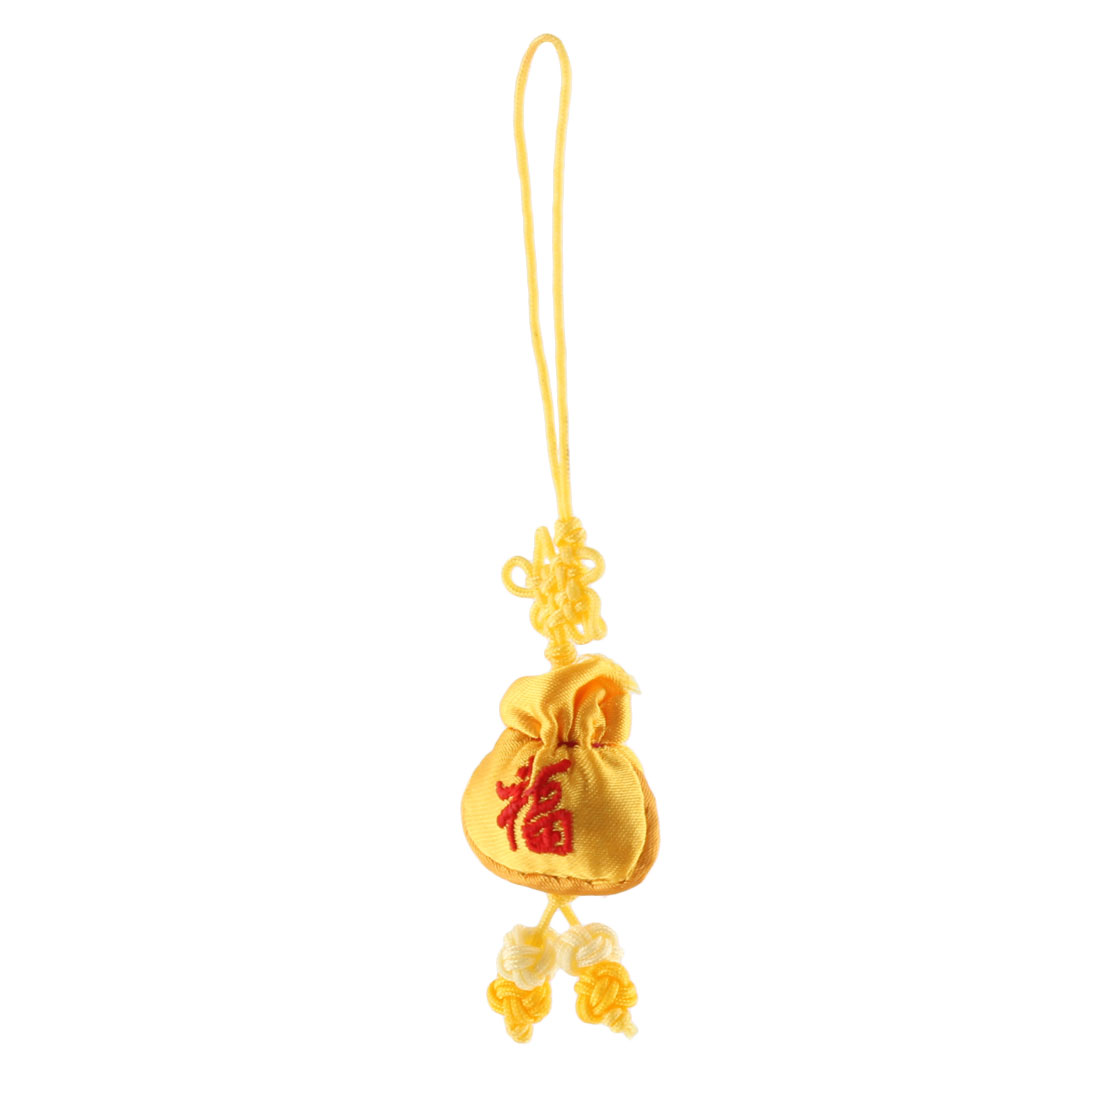 Household Chinese Mini Embroidery Luck Sachet Pendant Hanging Knot Yellow